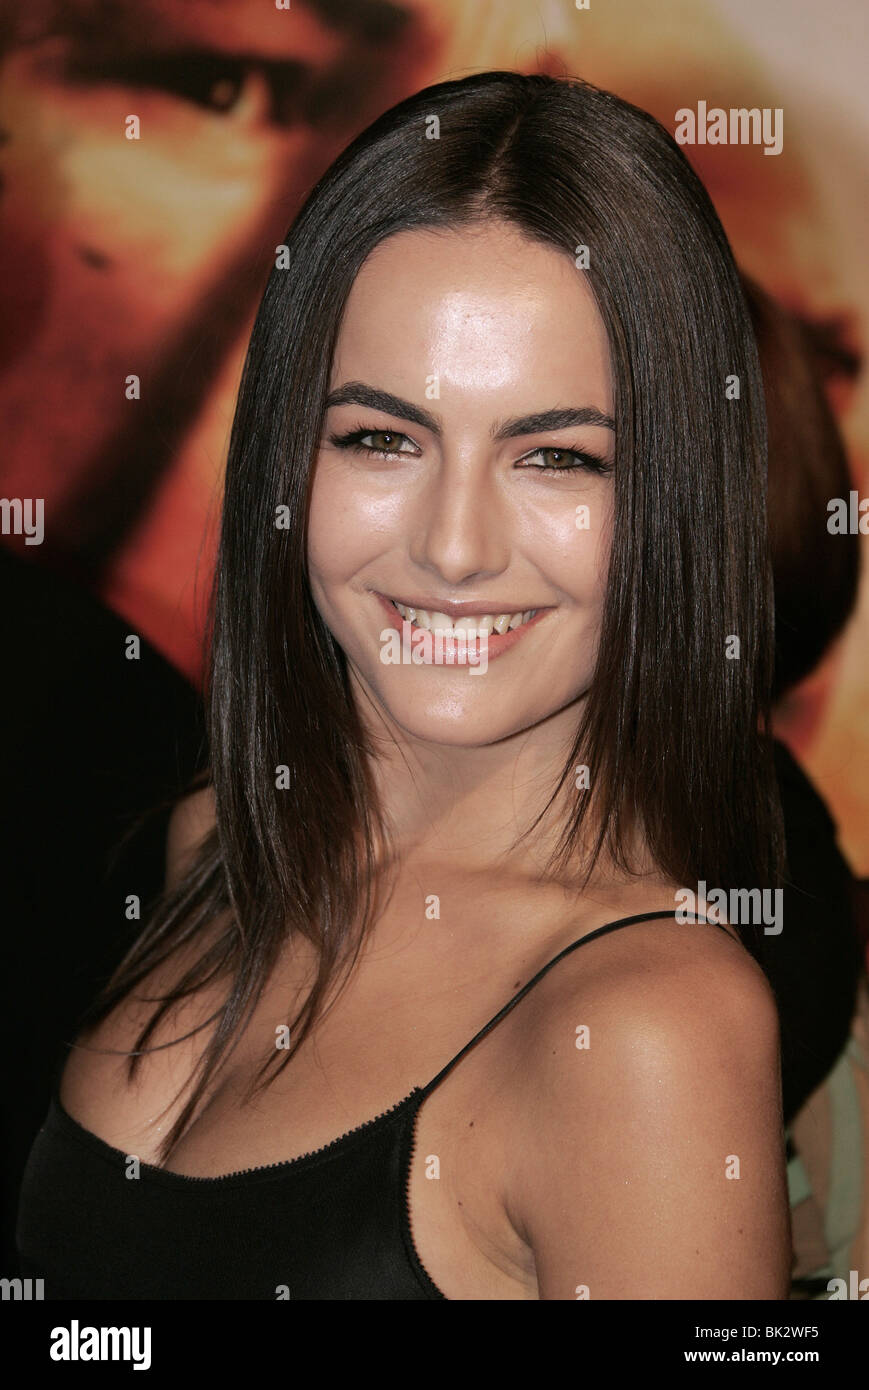 Blood Diamonds Libro Camilla Belle Blood Diamond Premiere Imágenes De Stock Camilla